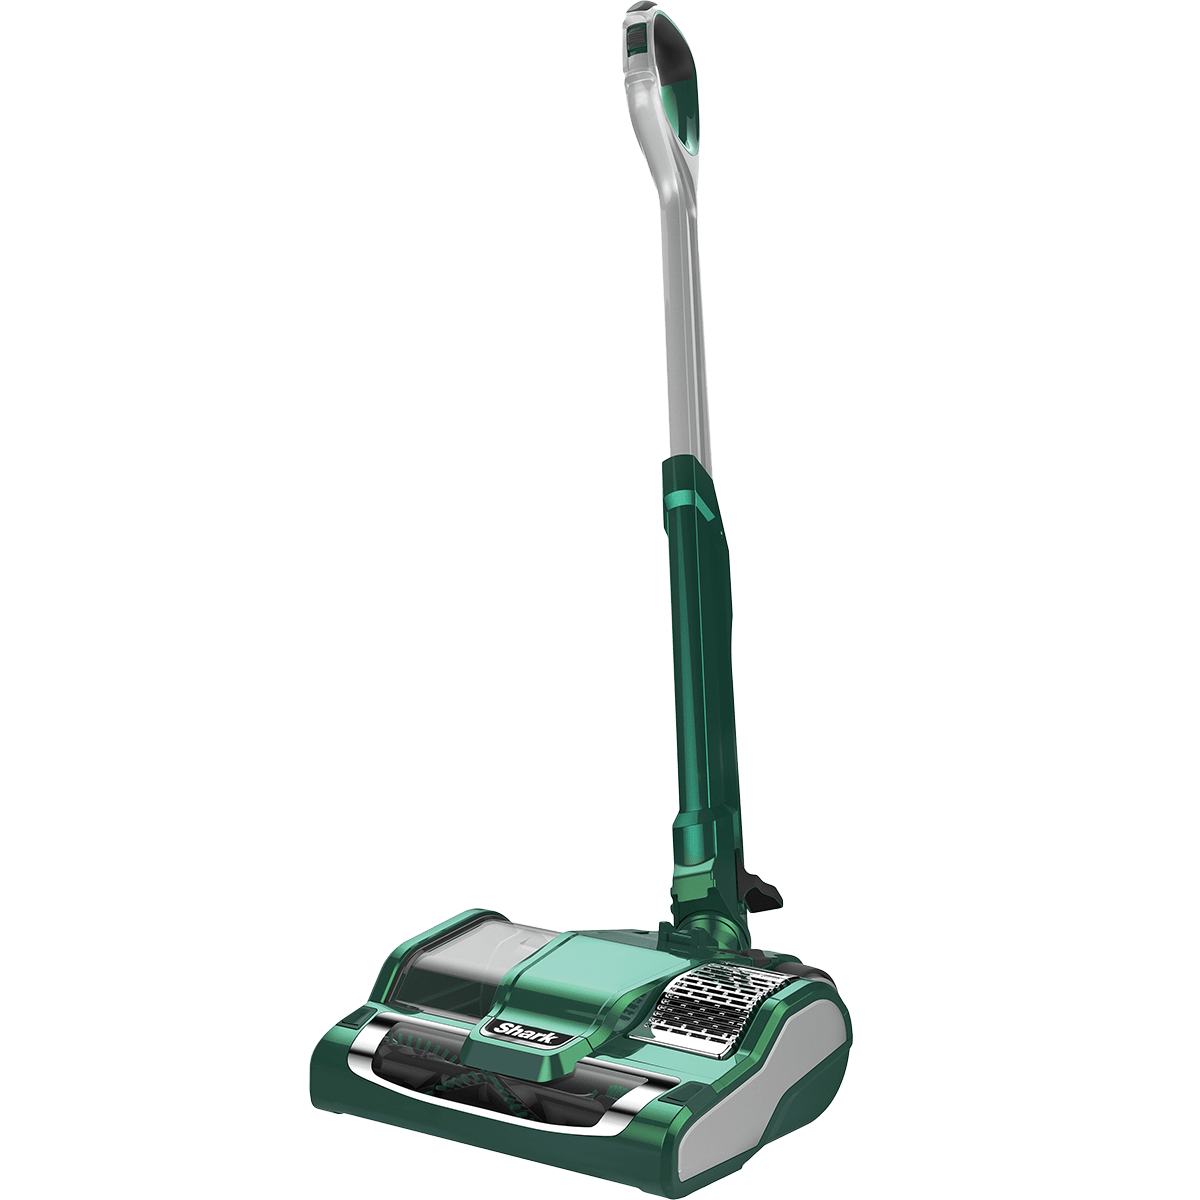 The Shark Navigator Lift-Away Bagless Upright Vacuum Cleaner (NV) helps make it easy to get all your home's spaces clean. It uses a HEPA filter and Complete Seal Technology to trap percent of dust as well as pollen and other allergens so you can breathe easier.